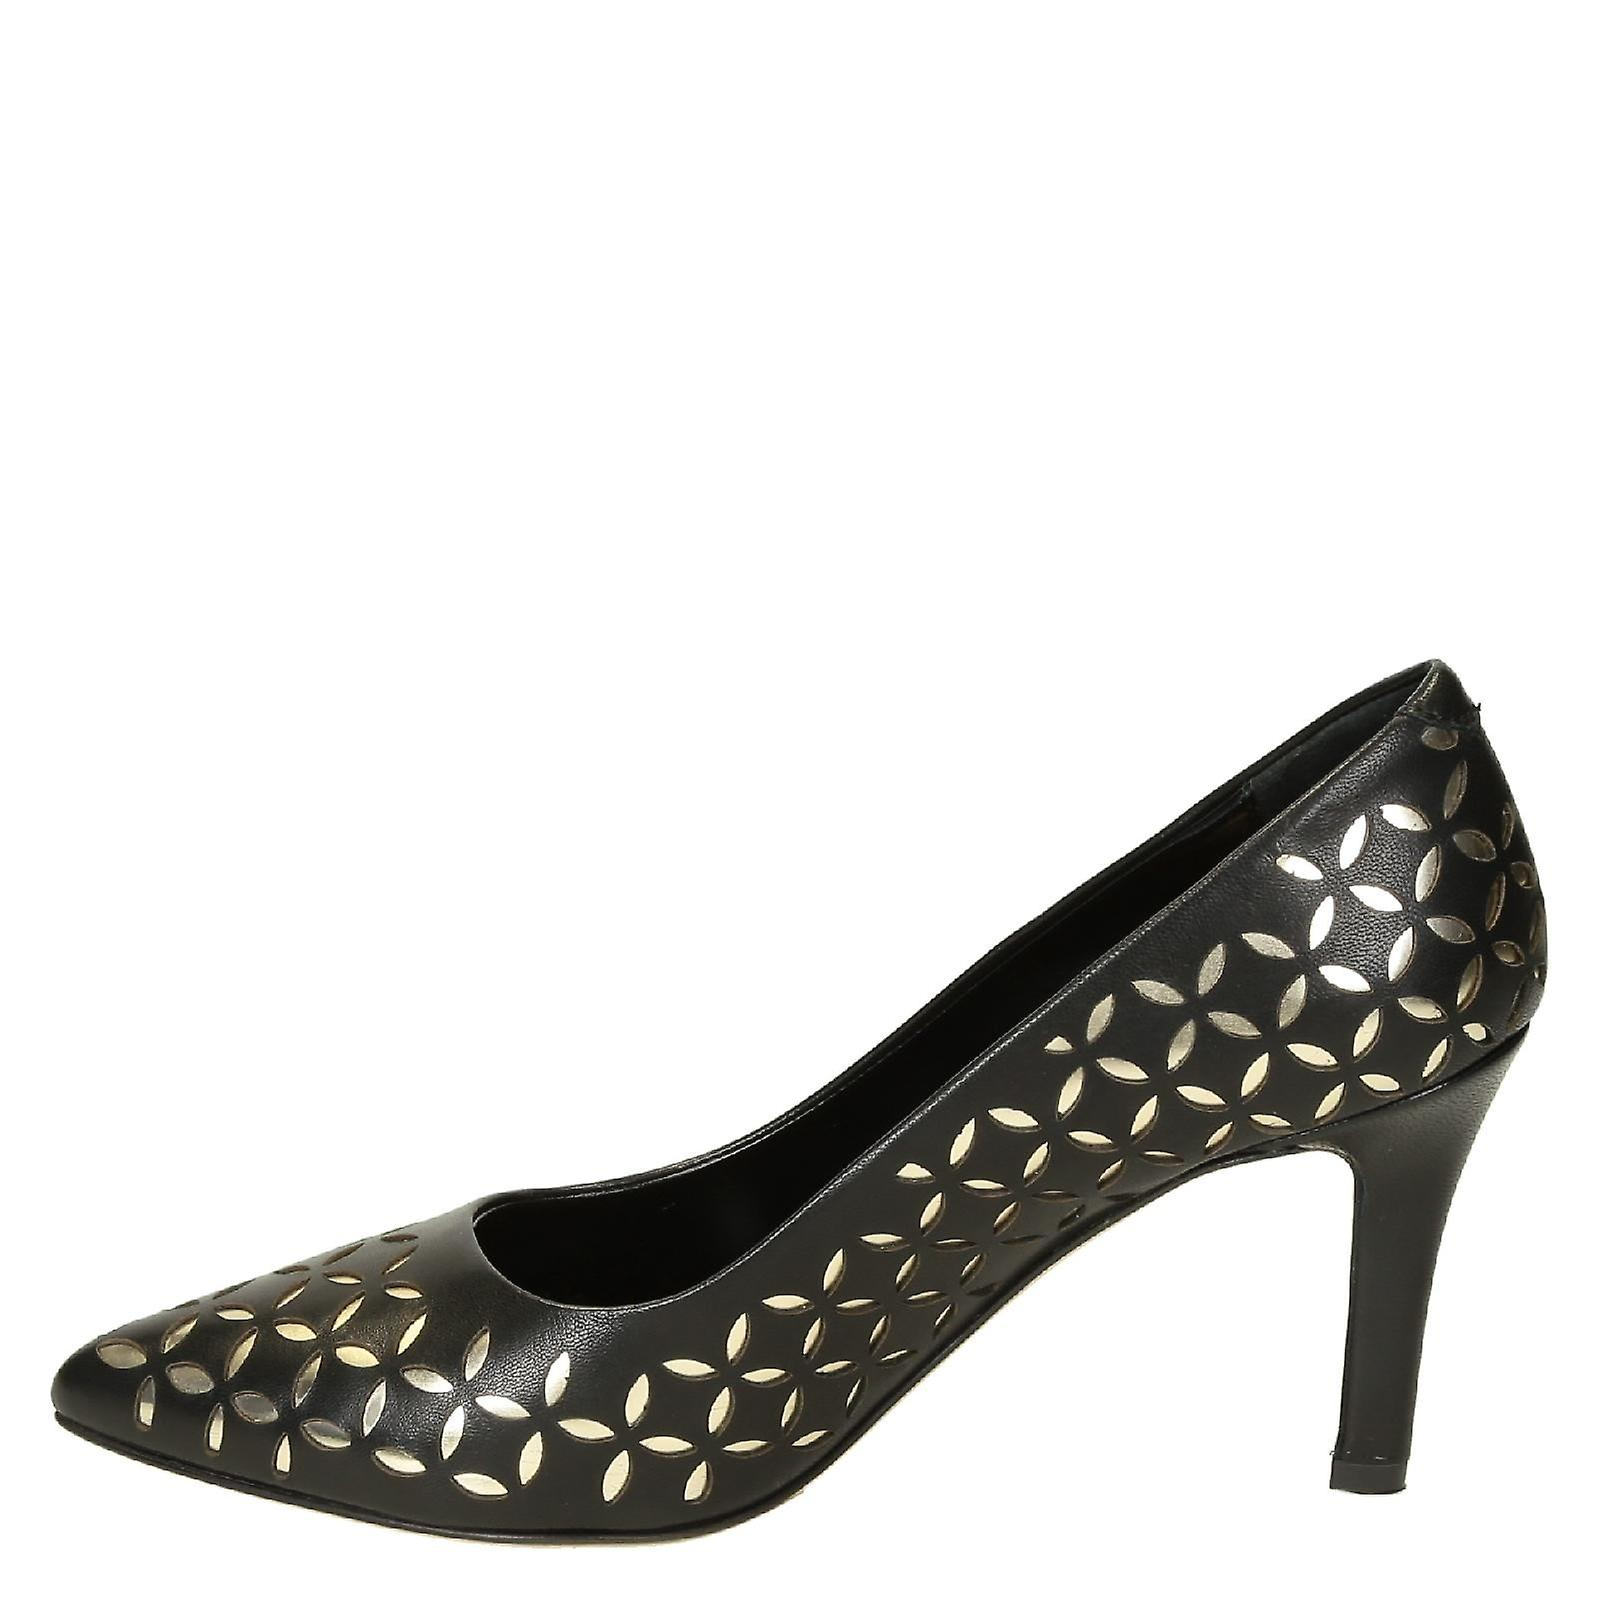 Black Leather Pumps Pointed Toe With Silver Texture